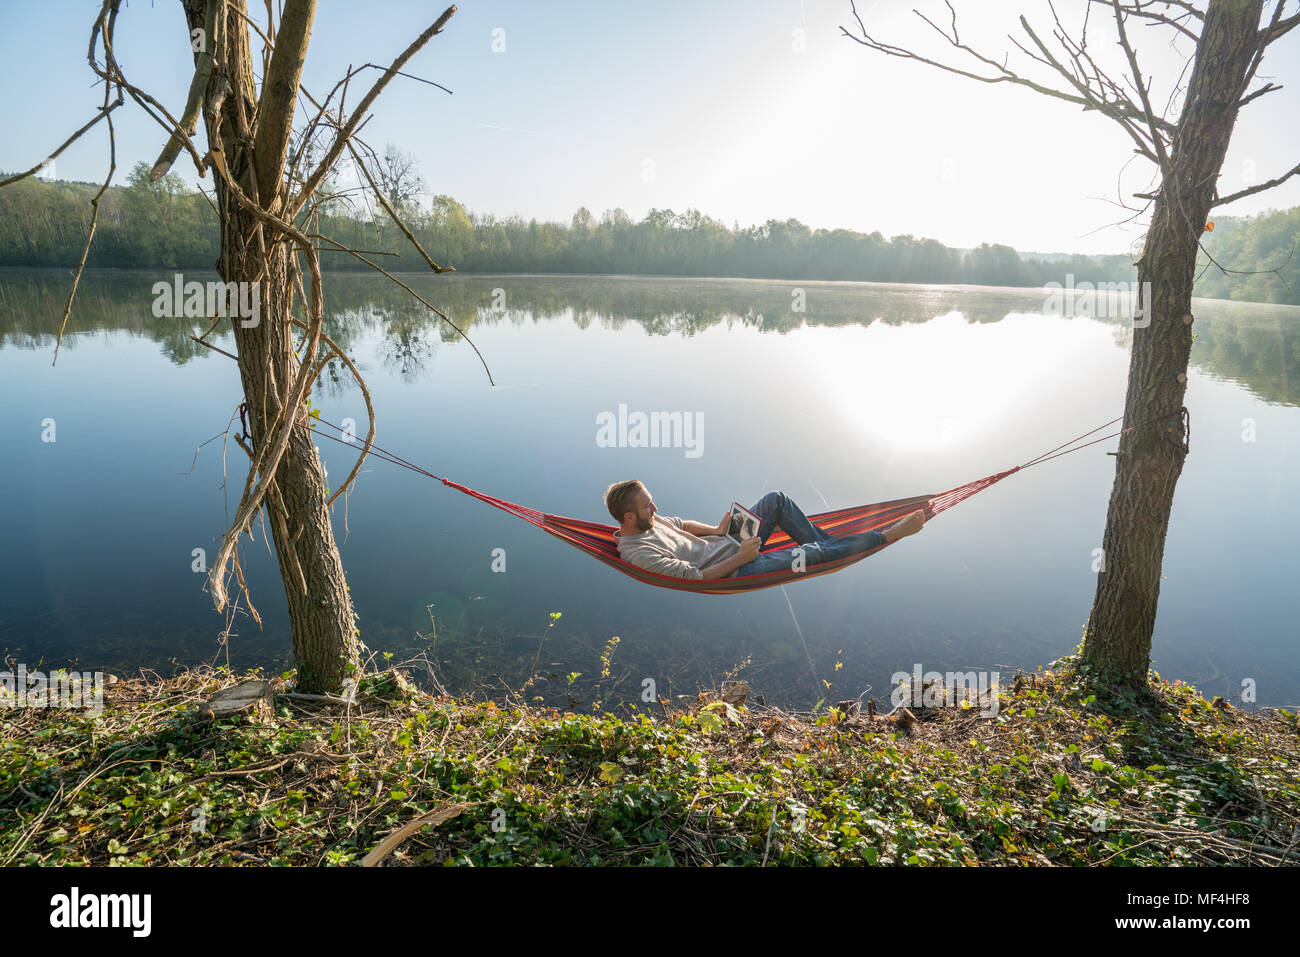 Young man by the lake hanging on hammock reading on digital tablet one the morning. People relaxation travel technology concept. Shot in France, Eu Stock Photo